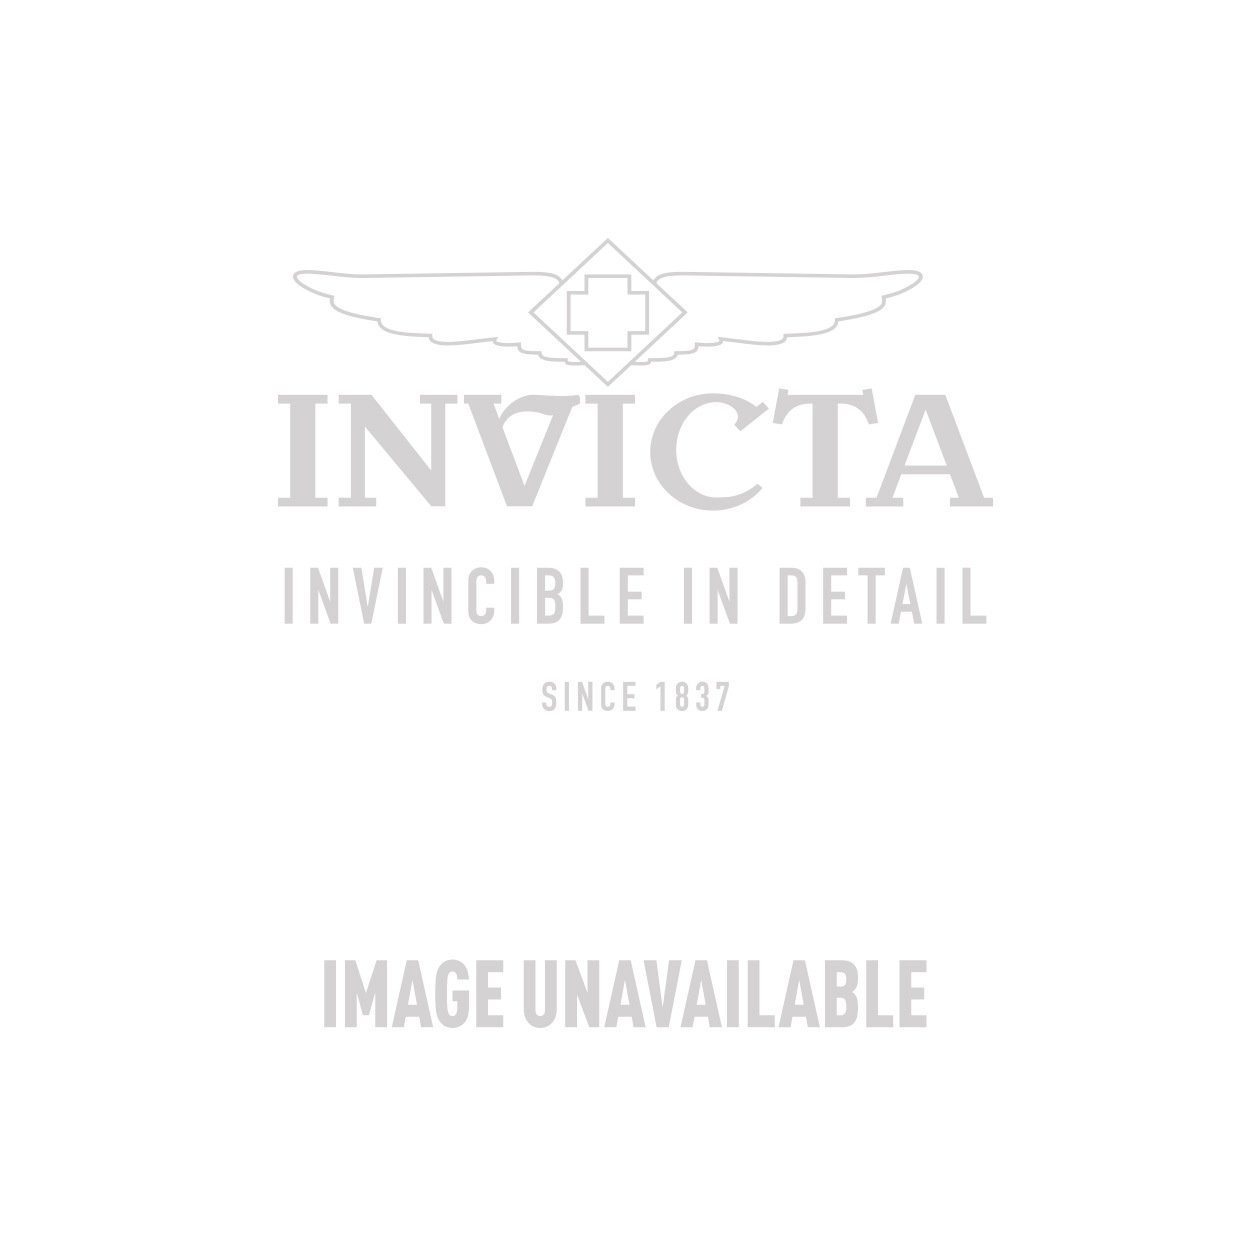 Invicta 1 Slot Impact Case - Model DC1CAMO-SAND